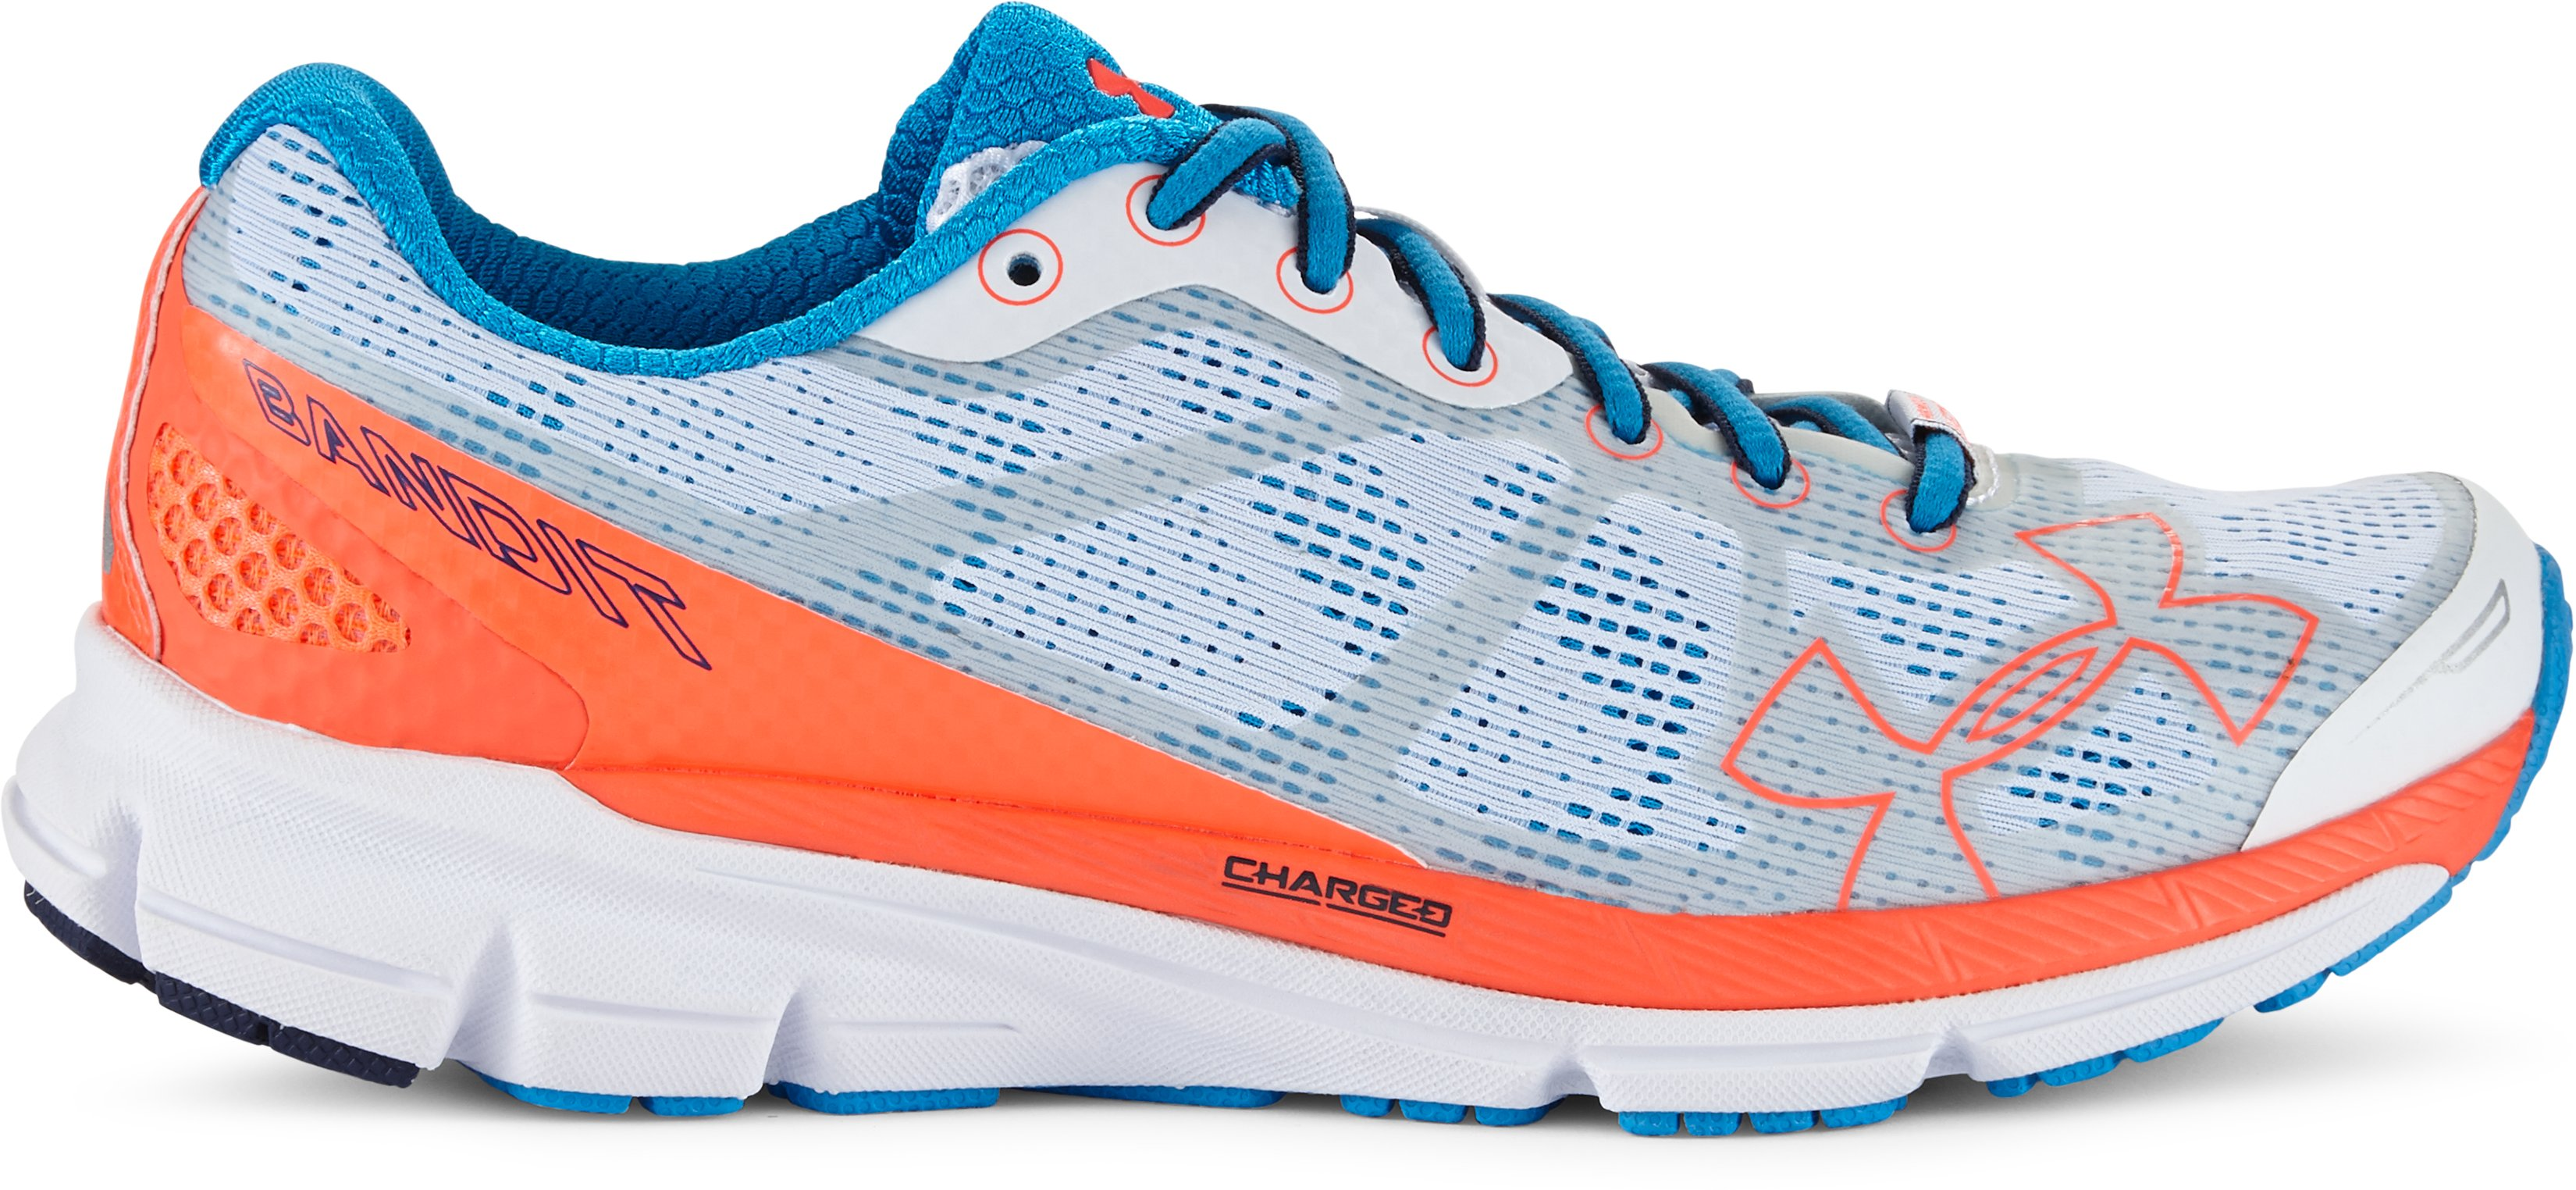 US 7,5 - EU 38,5 Under Armour Womens Charged Bandit